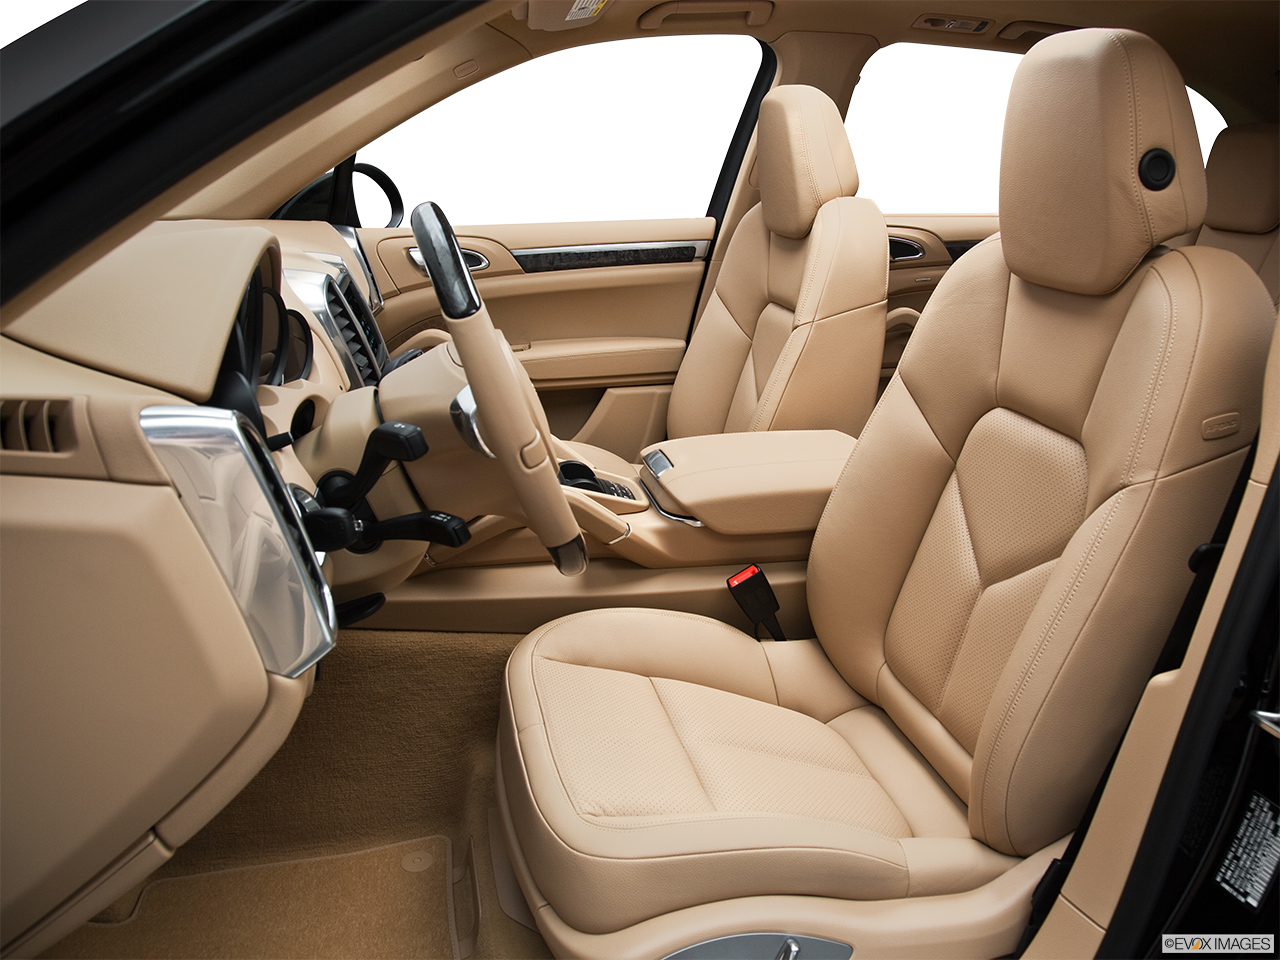 2011 Porsche Cayenne S Hybrid Base Front seats from Drivers Side.